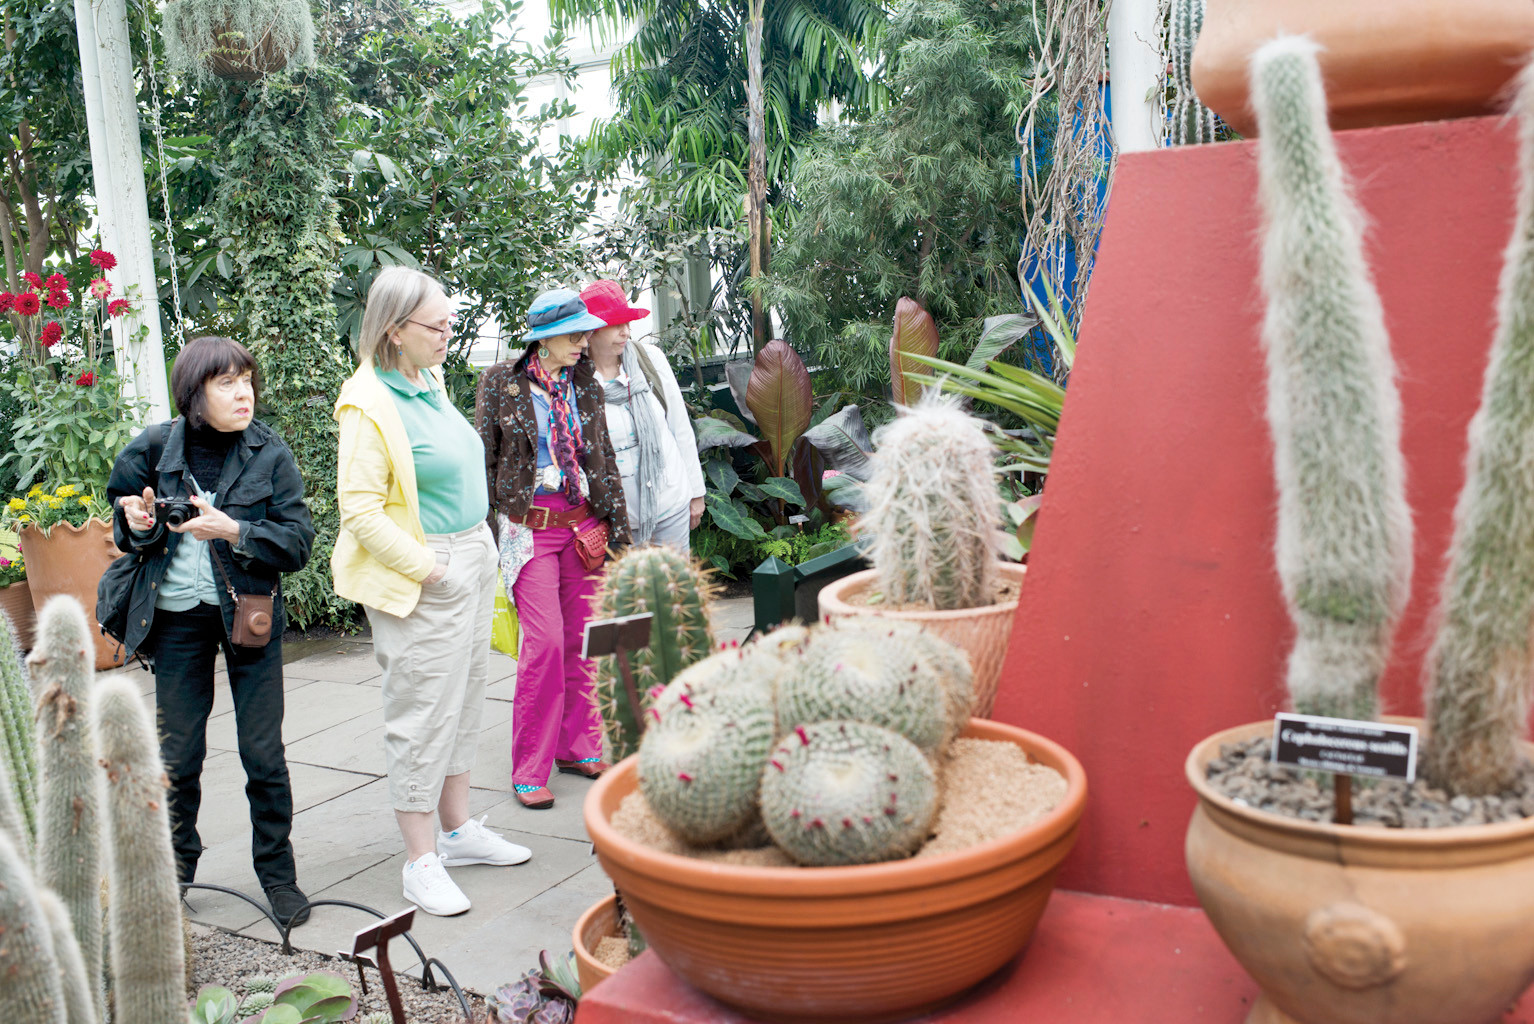 The exhibit in the conservatory building featured a 're-imagining' of the artist studio and home used by Frida Kahlo and her husband Diego Rivera, part of which featured a large pyramid for plants and artwork to sit.